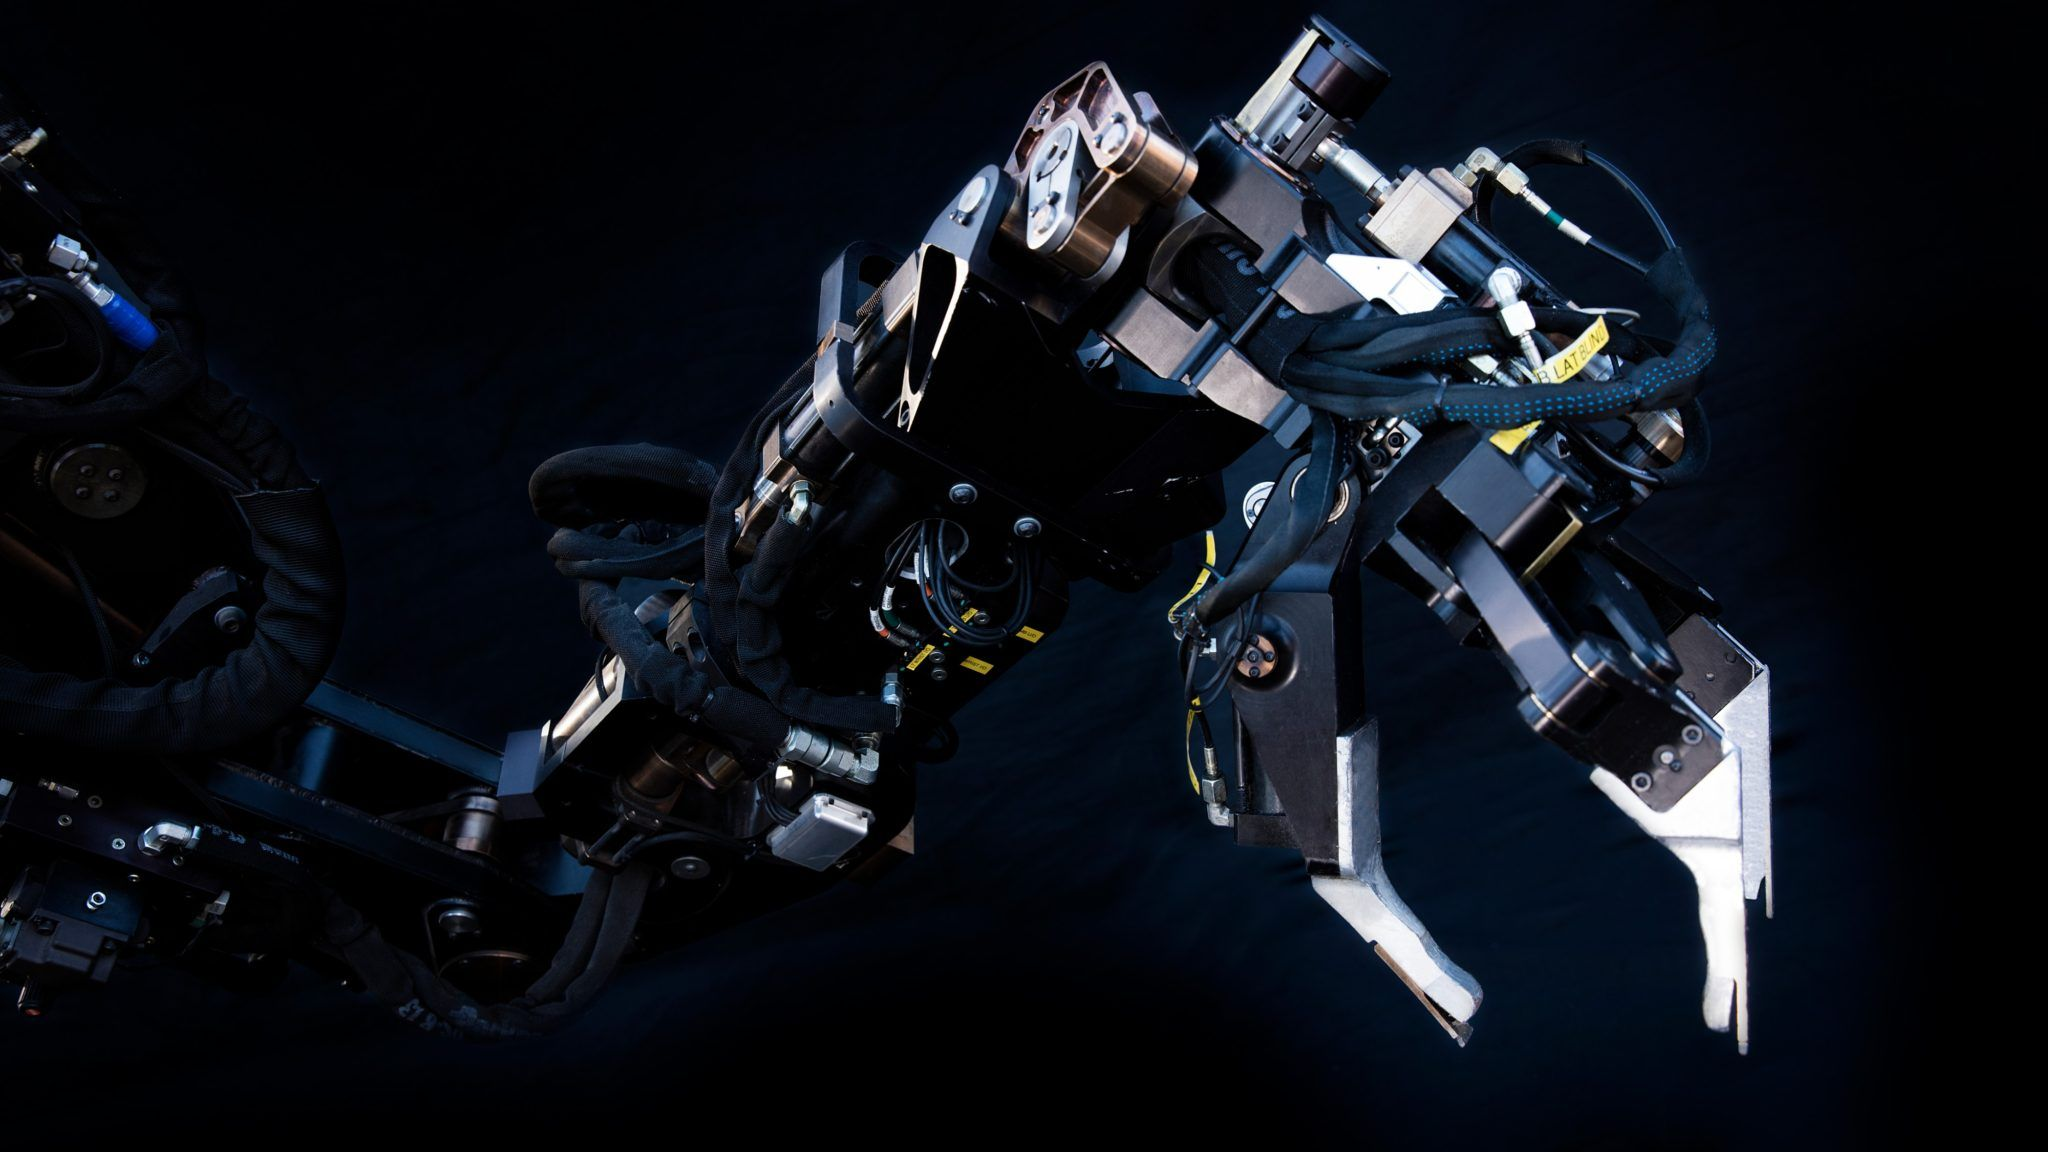 Sarcos GT's robotic arms can lift 1,000 pounds